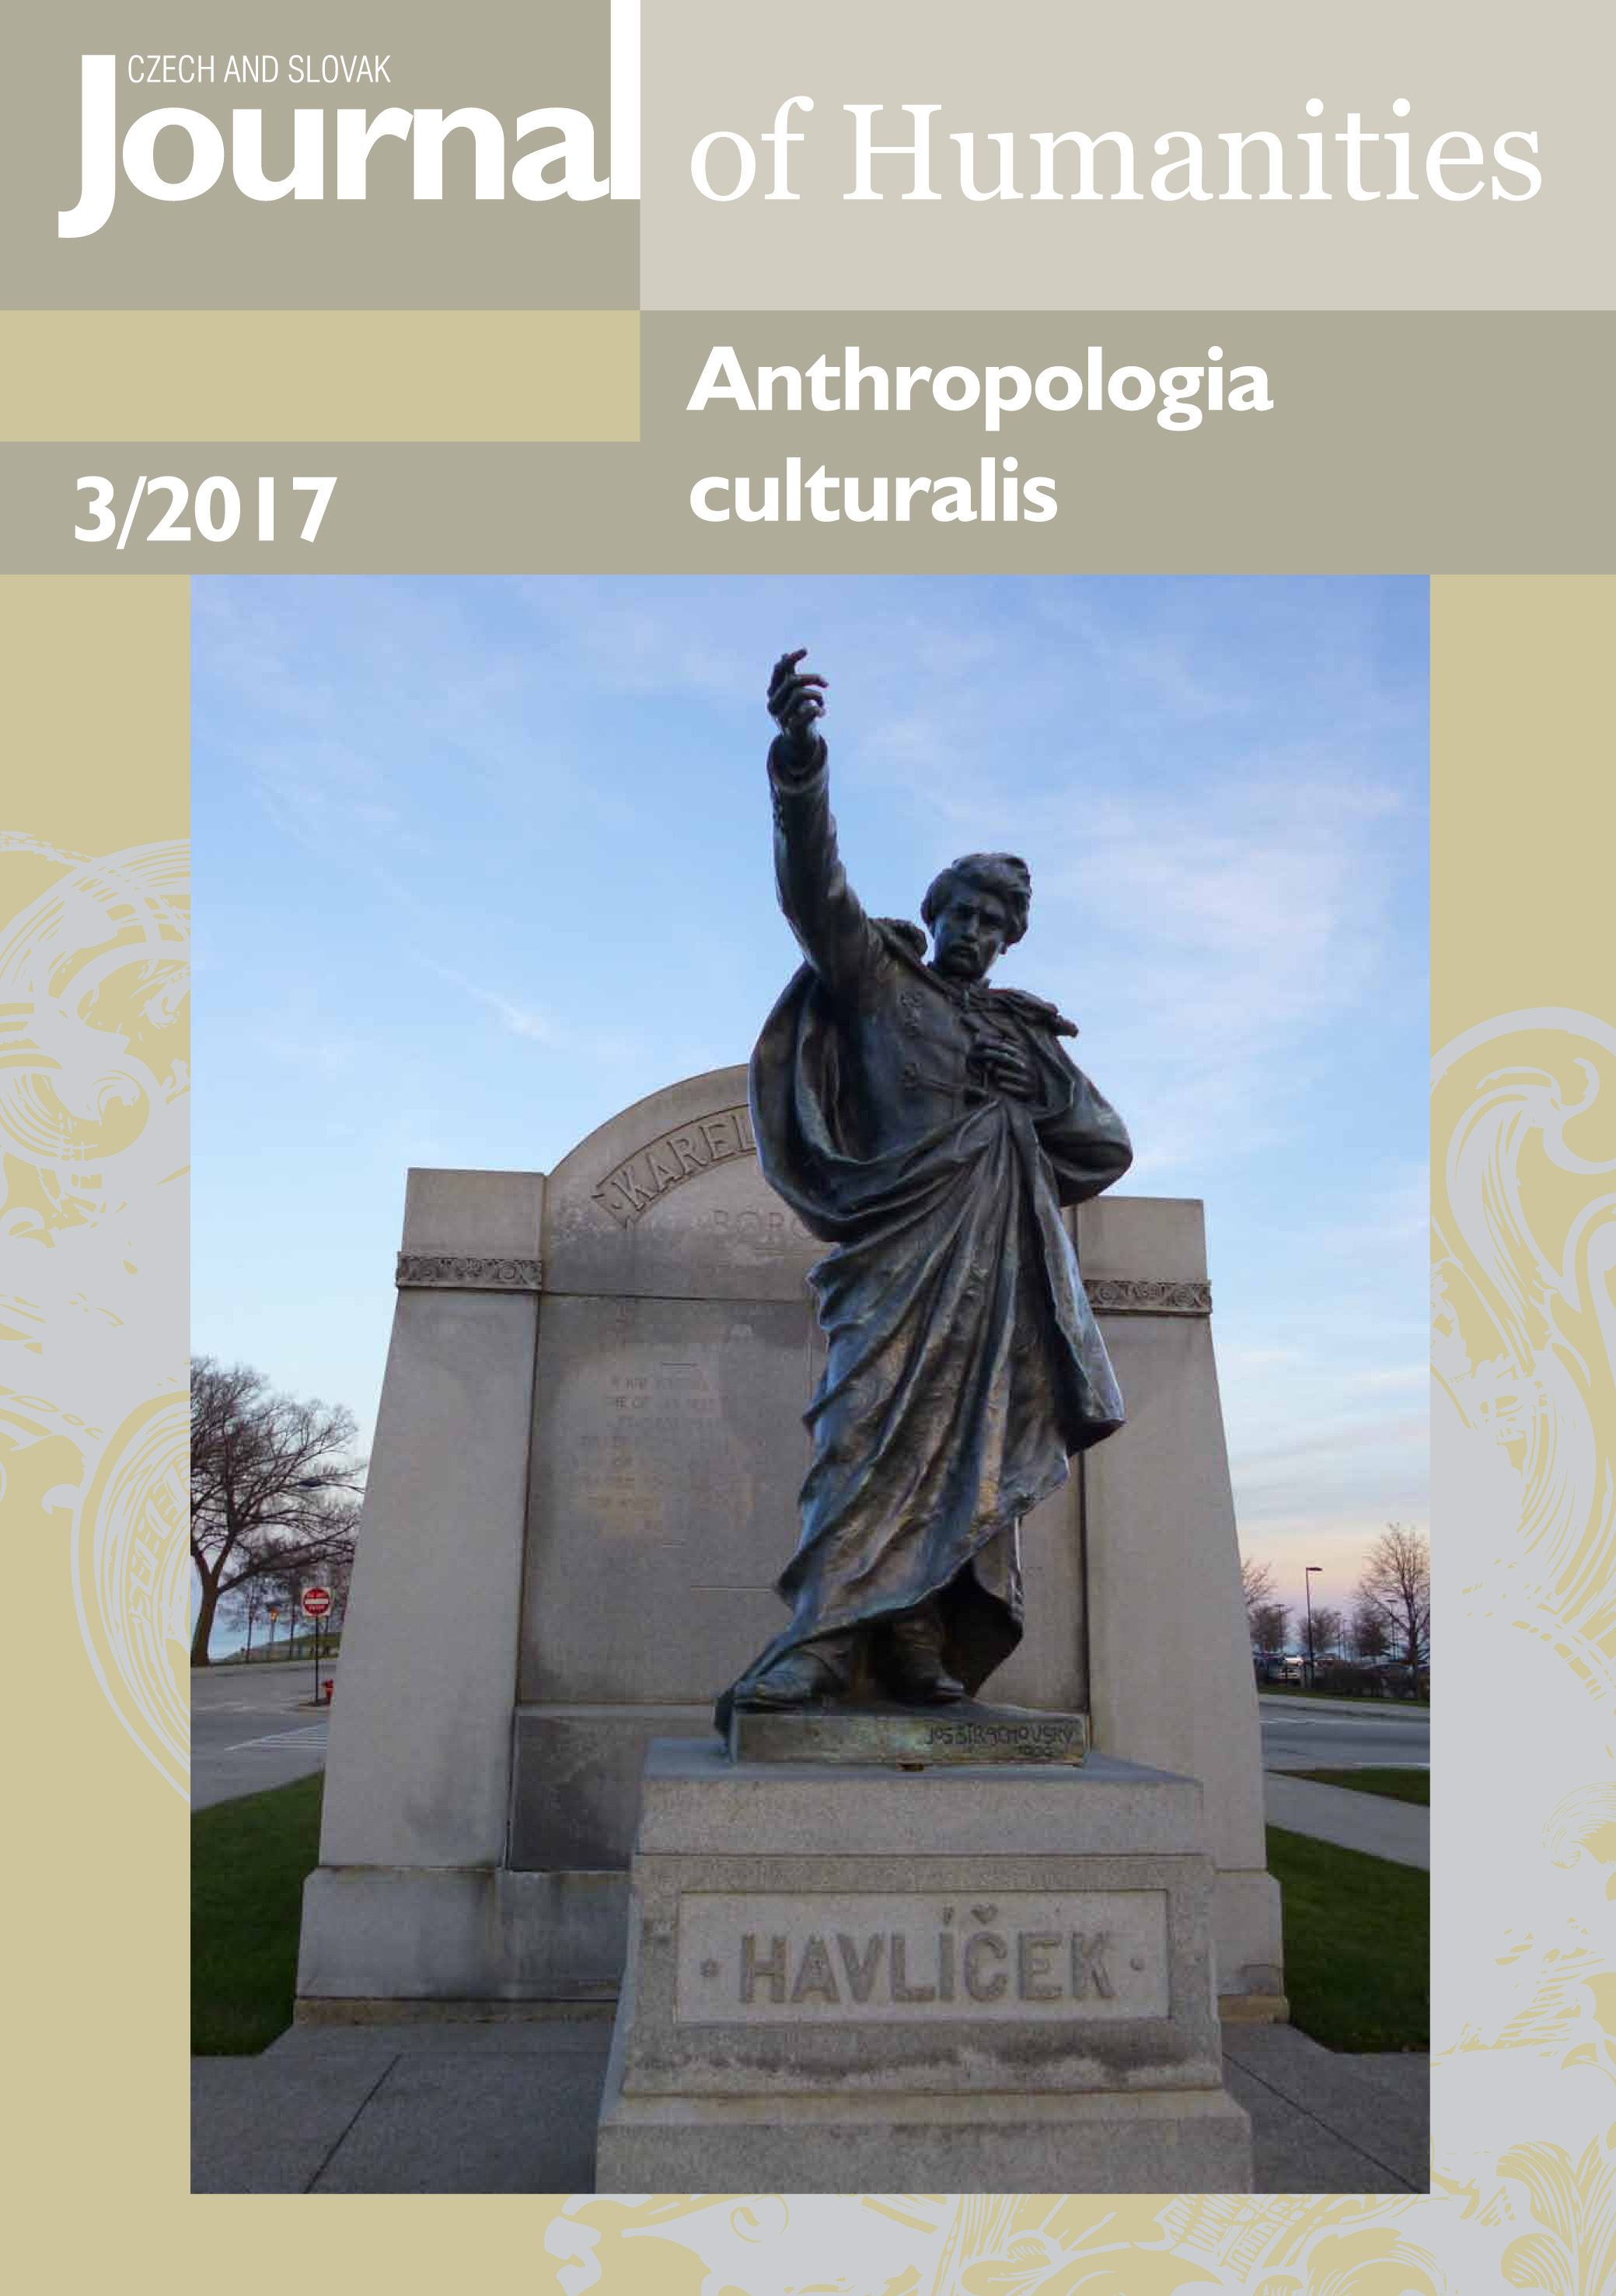 Anthropologia culturalis 3/2017